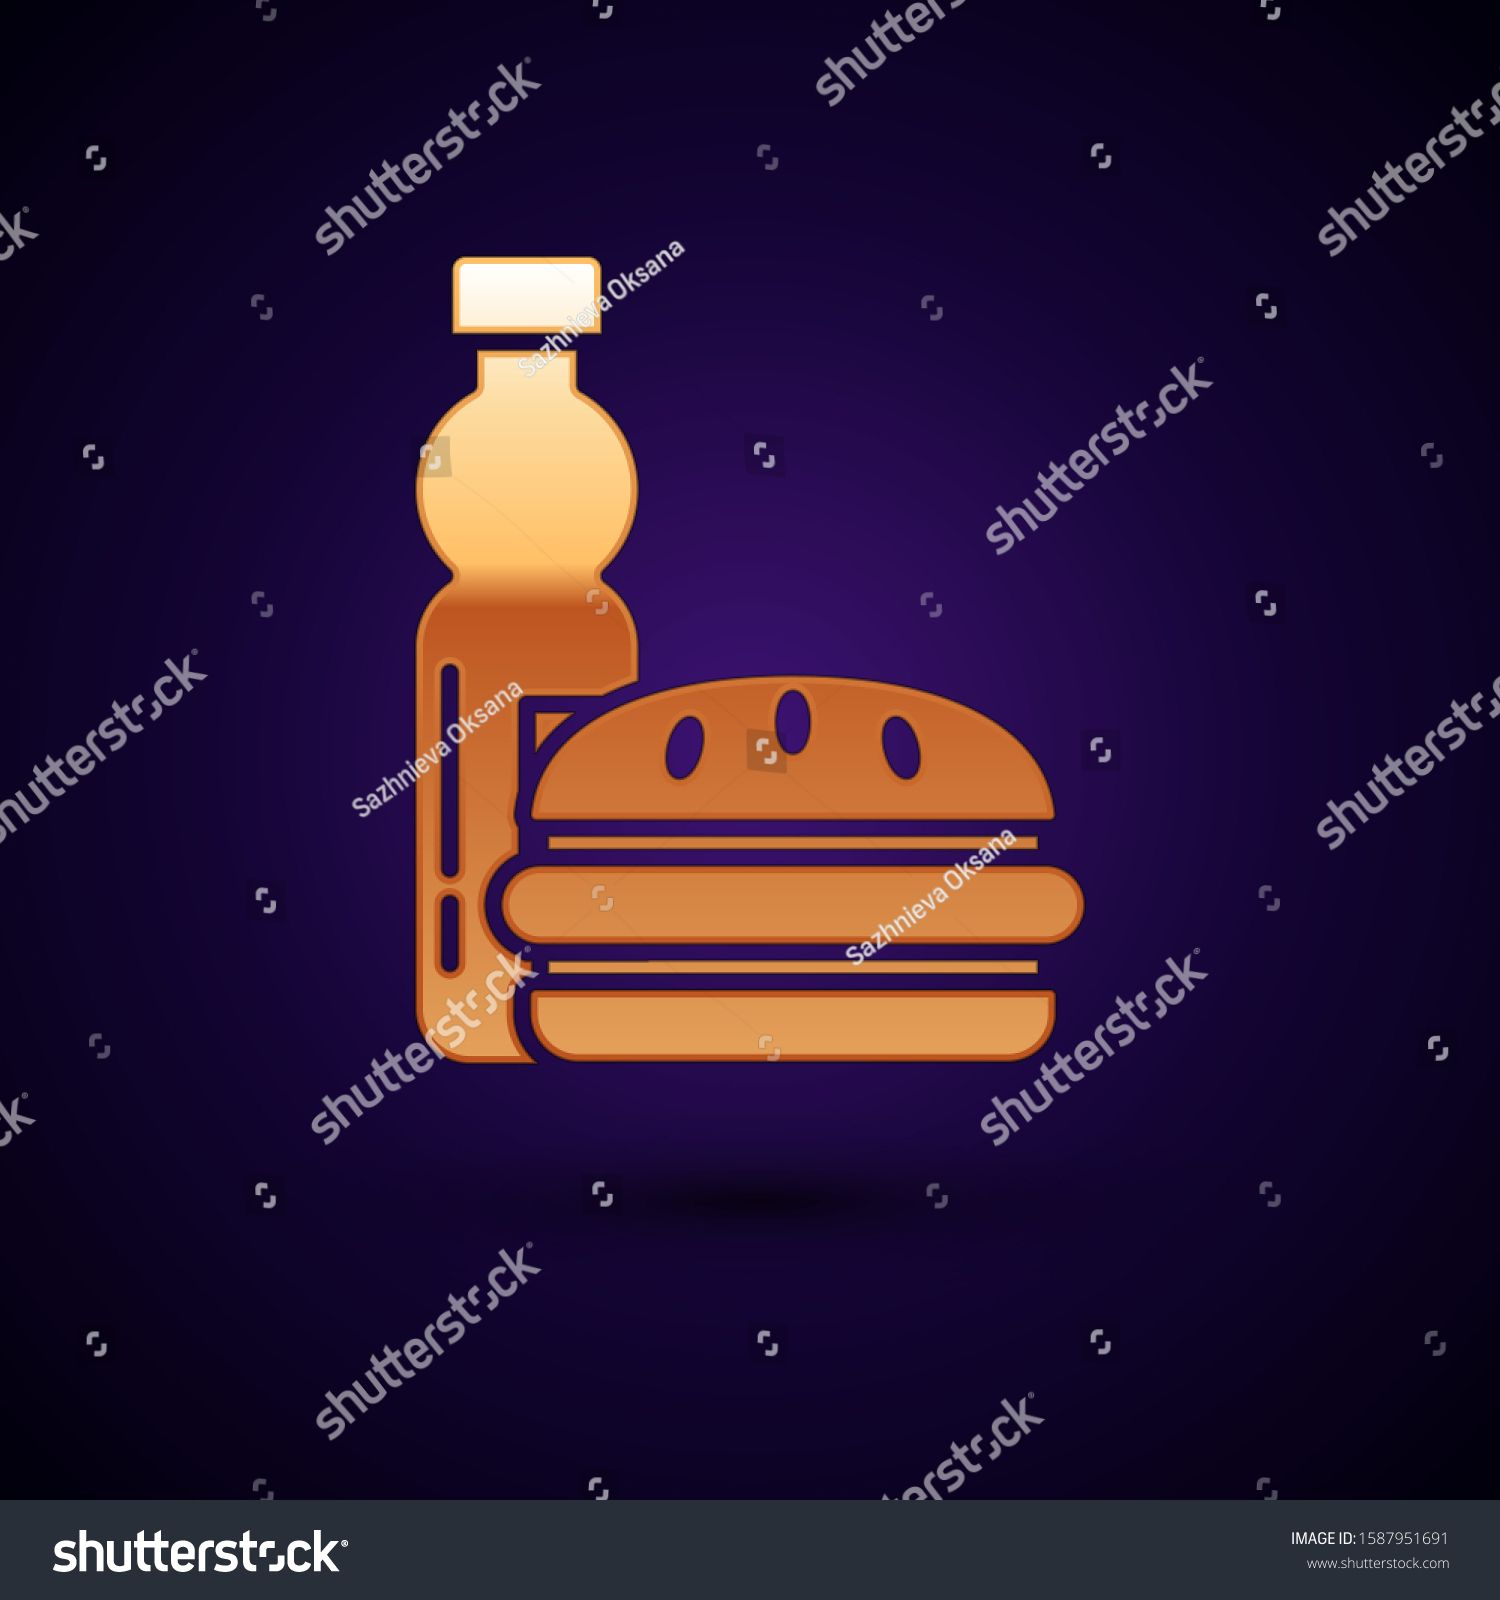 Gold Bottle of water and burger icon isolated on dark blue